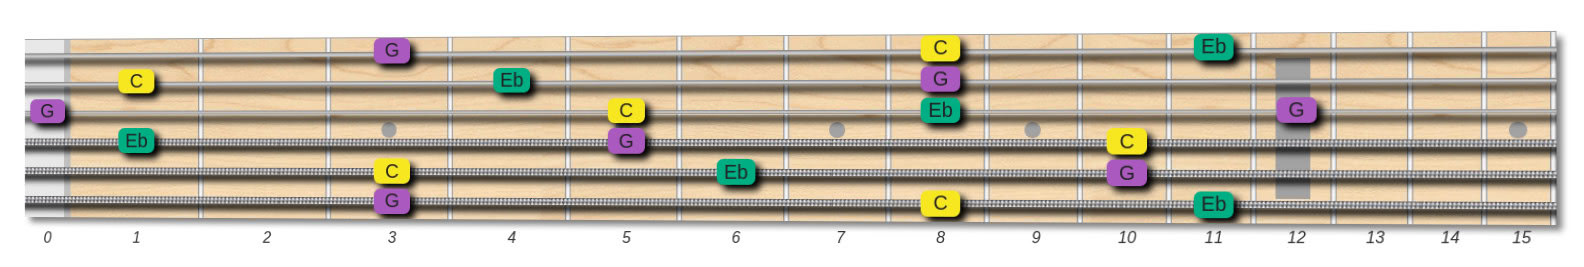 c minor chord tones on the fretboard